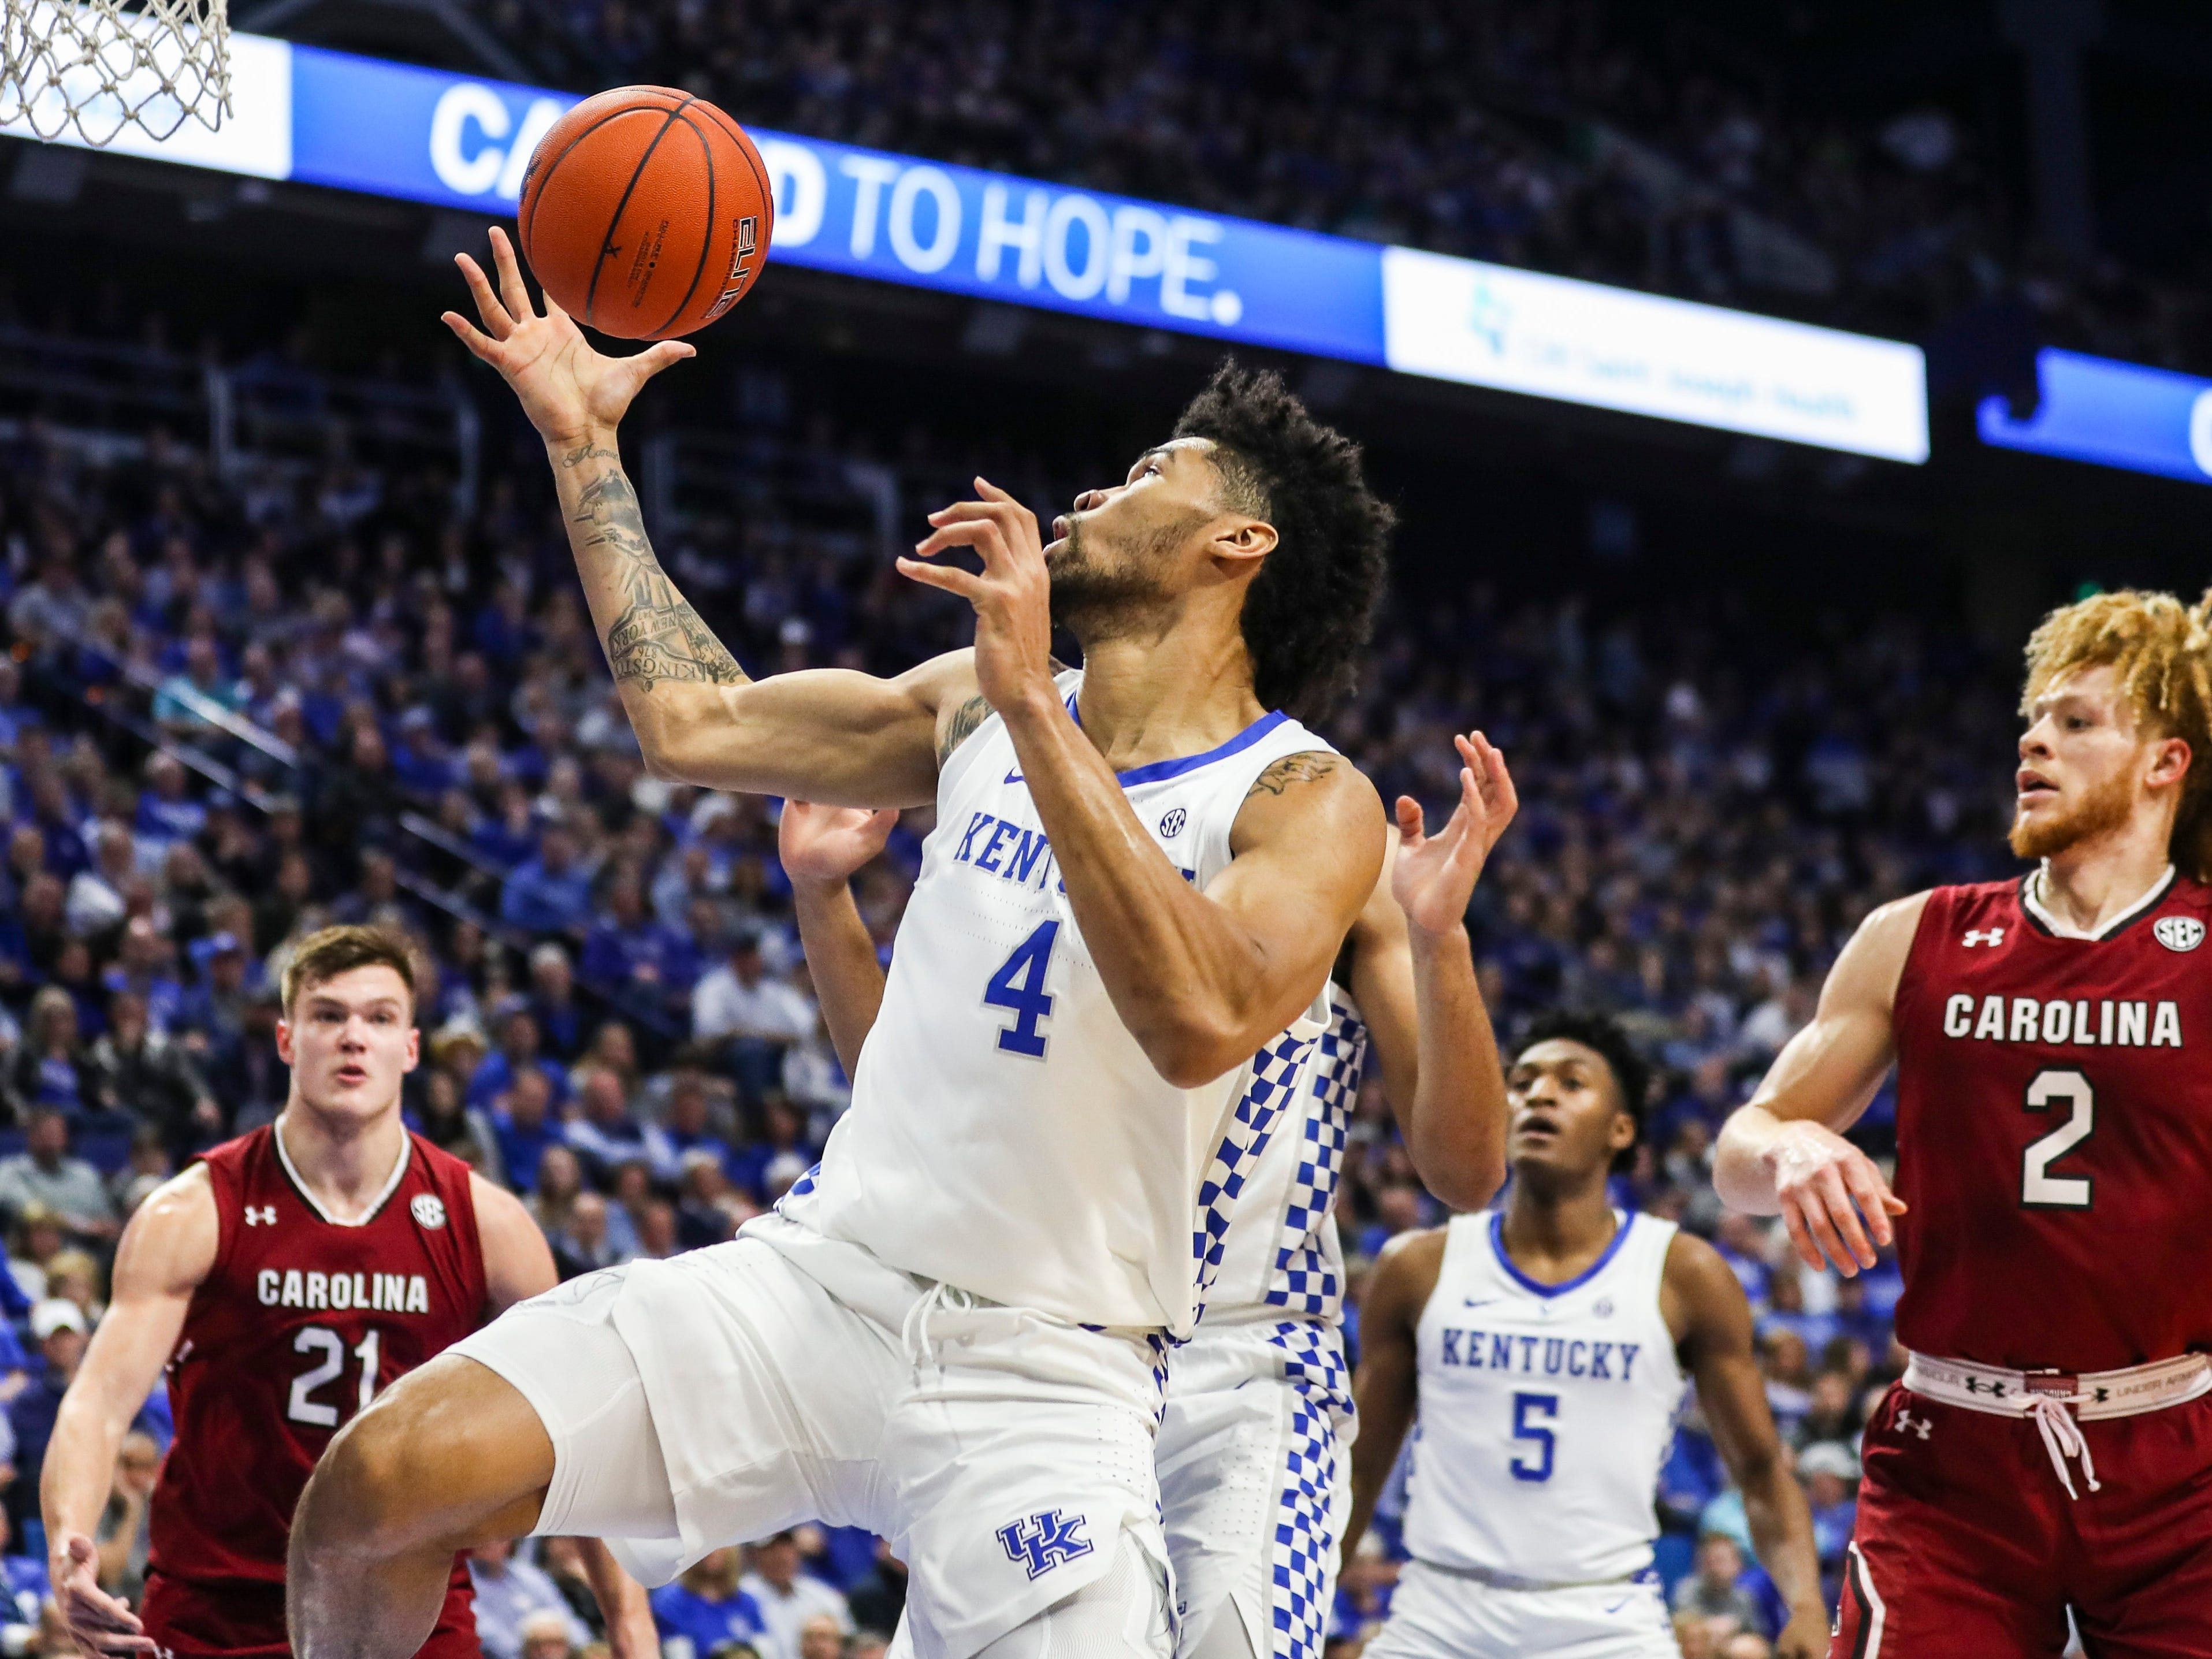 Kentucky's Nick Richards pulls down a rebound in the first half Tuesday night against South Carolina at Rupp Arena. Feb. 5, 2019